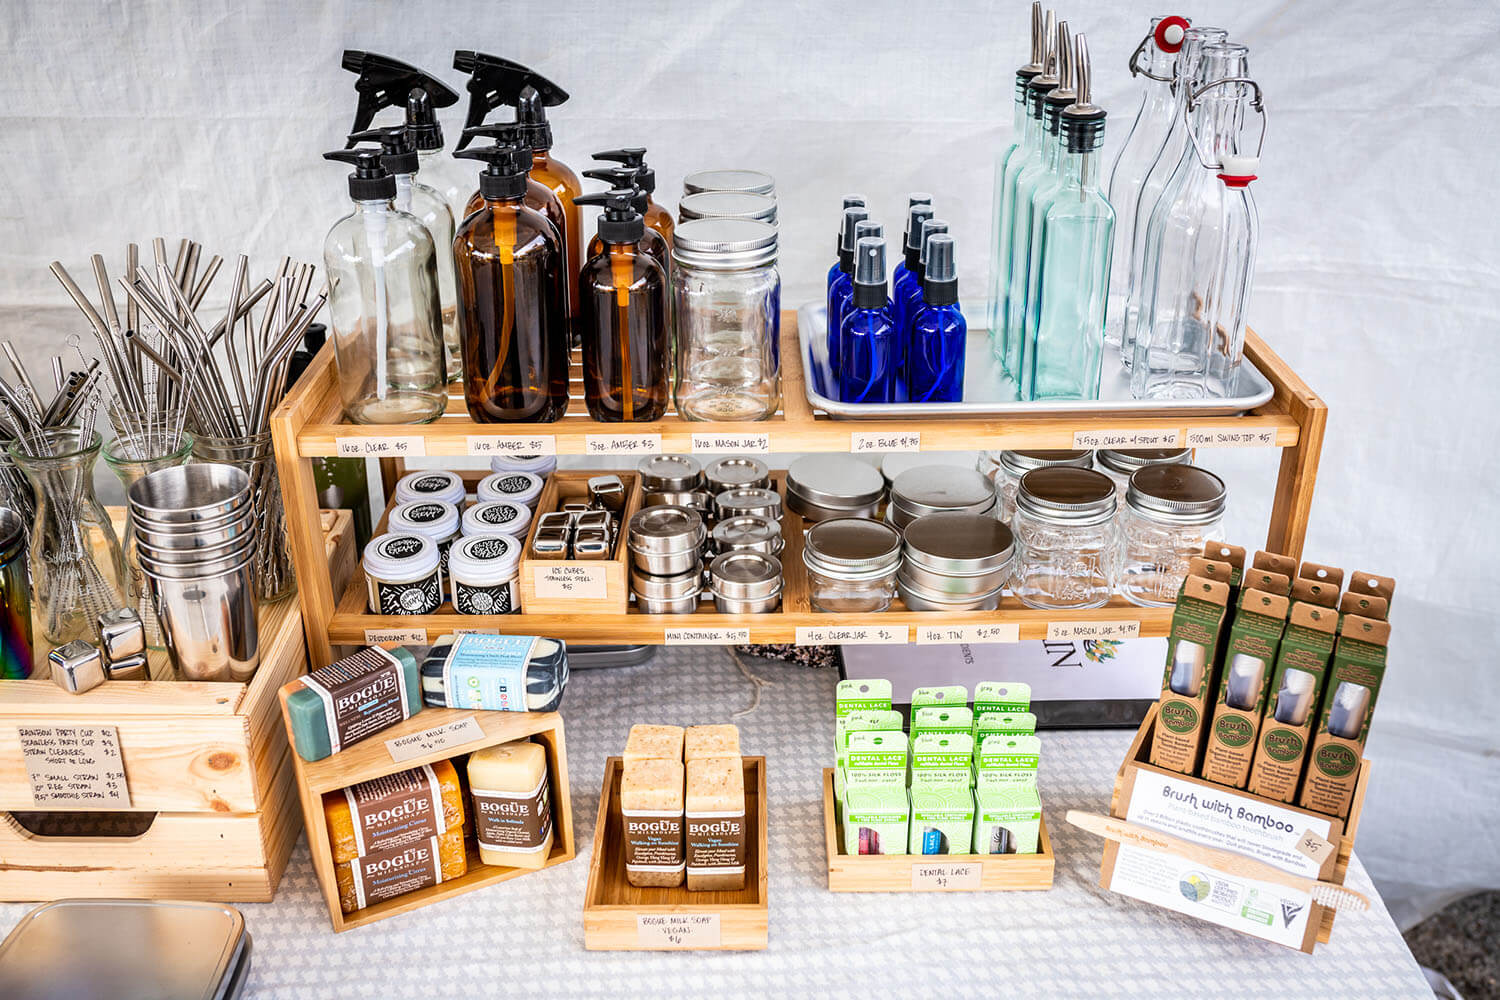 Jars and spritzers at Sustain LA Refill Station